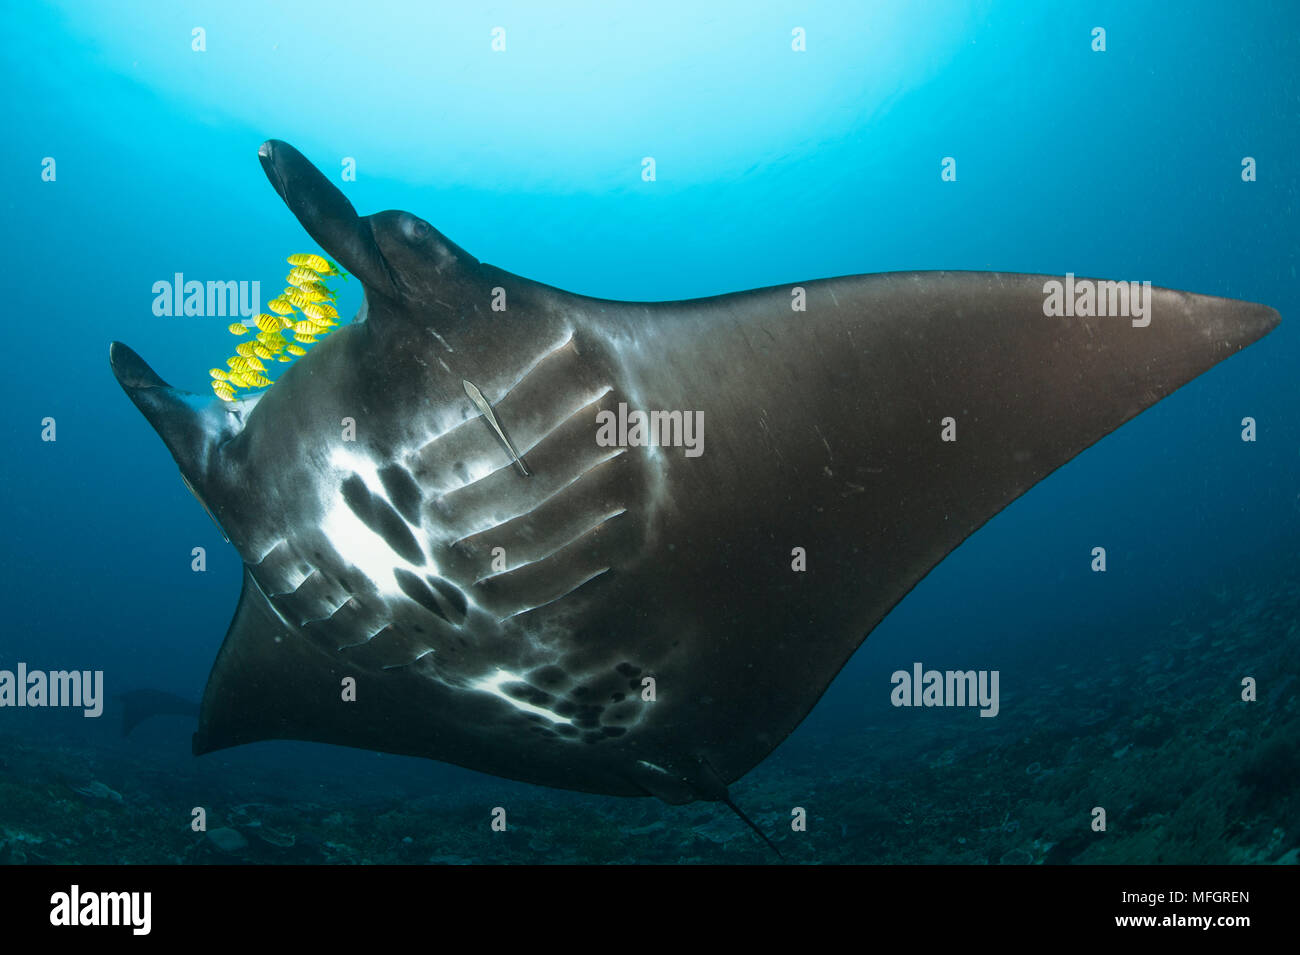 The reef manta ray, Manta alfredi, with yellow pilot fish in front of its mouth, Dampier Strait, Raja Ampat, West Papua, Indonesia - Stock Image